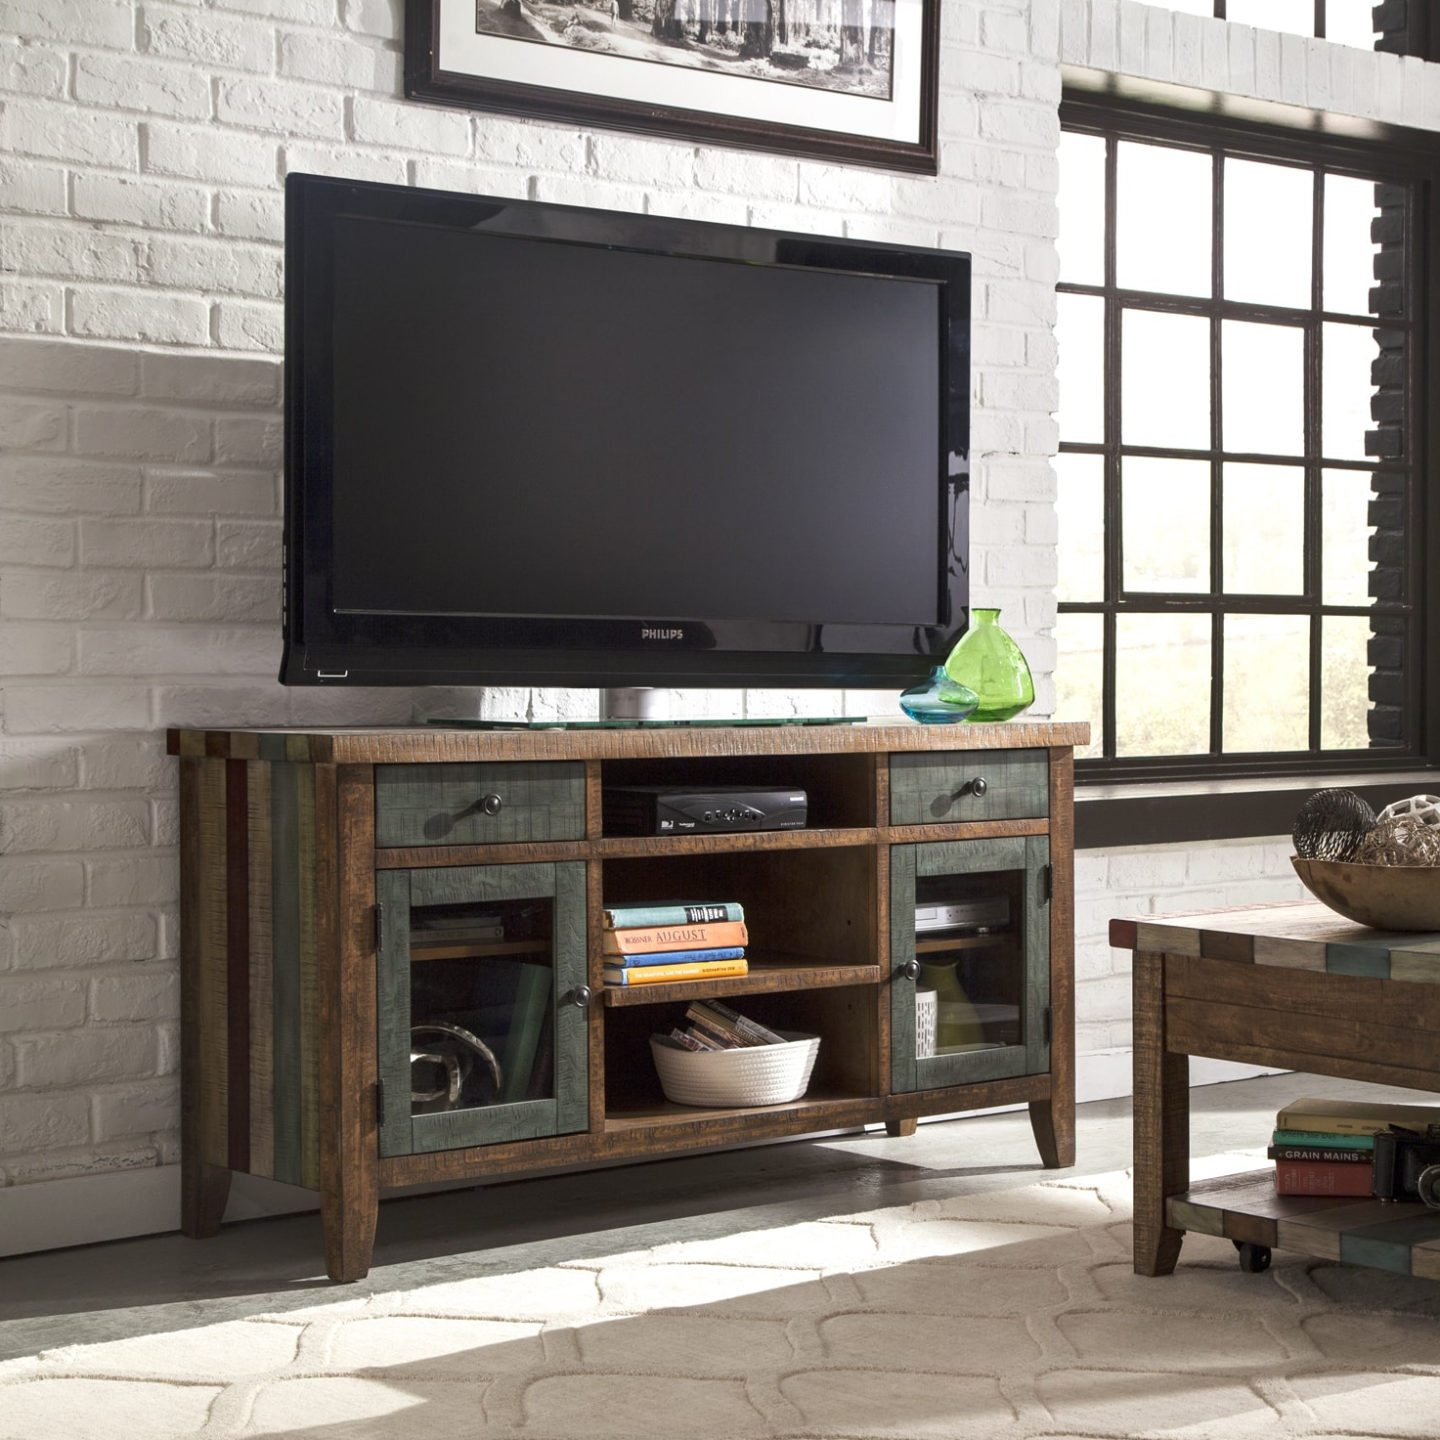 Types of TV Cabinets